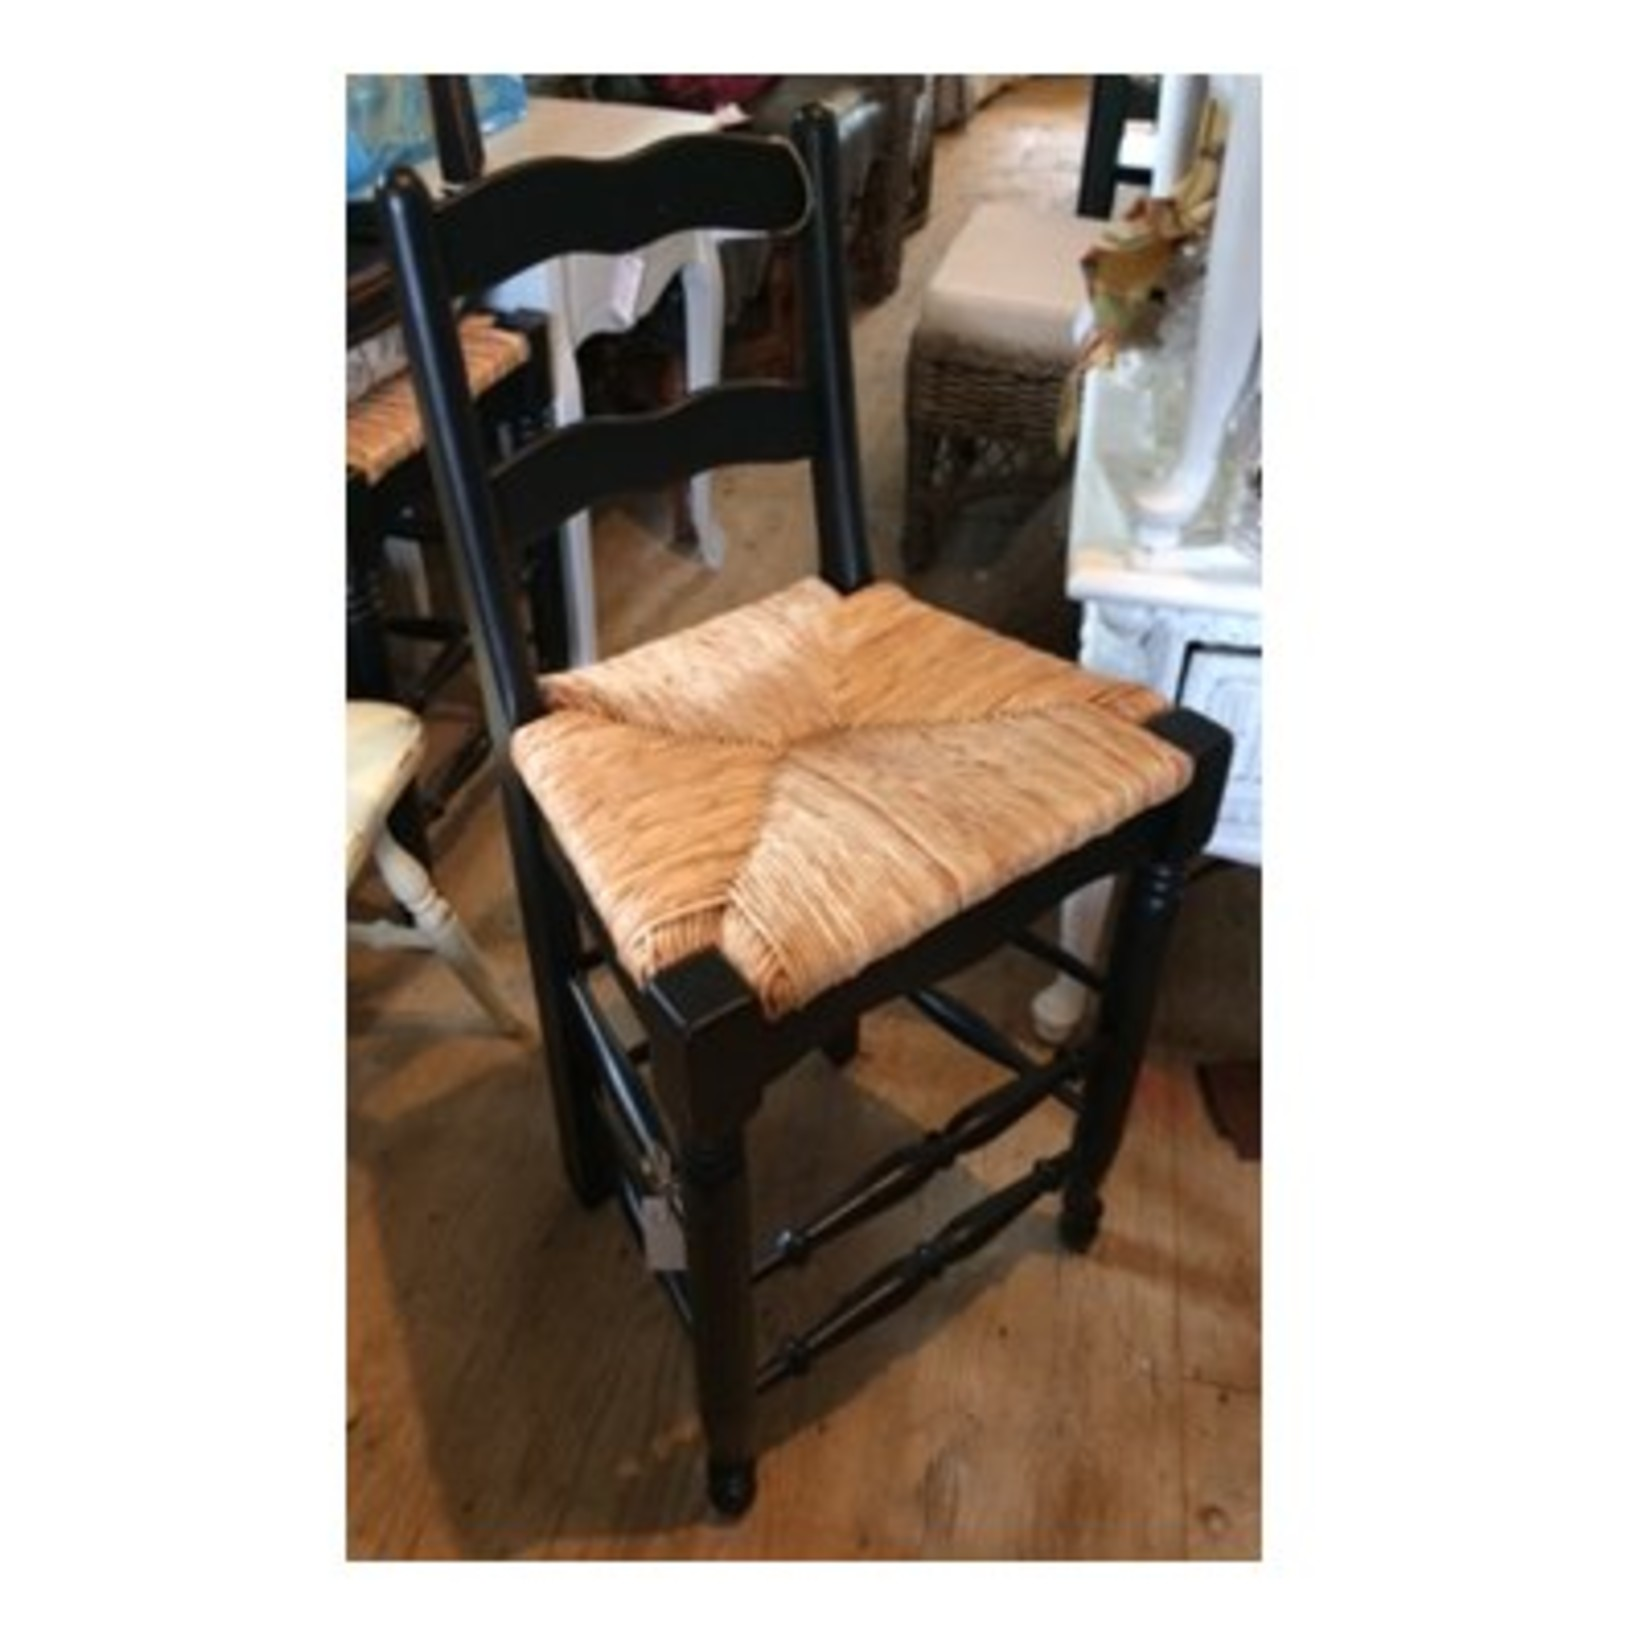 Counter Stool - Black with Wicker Seat